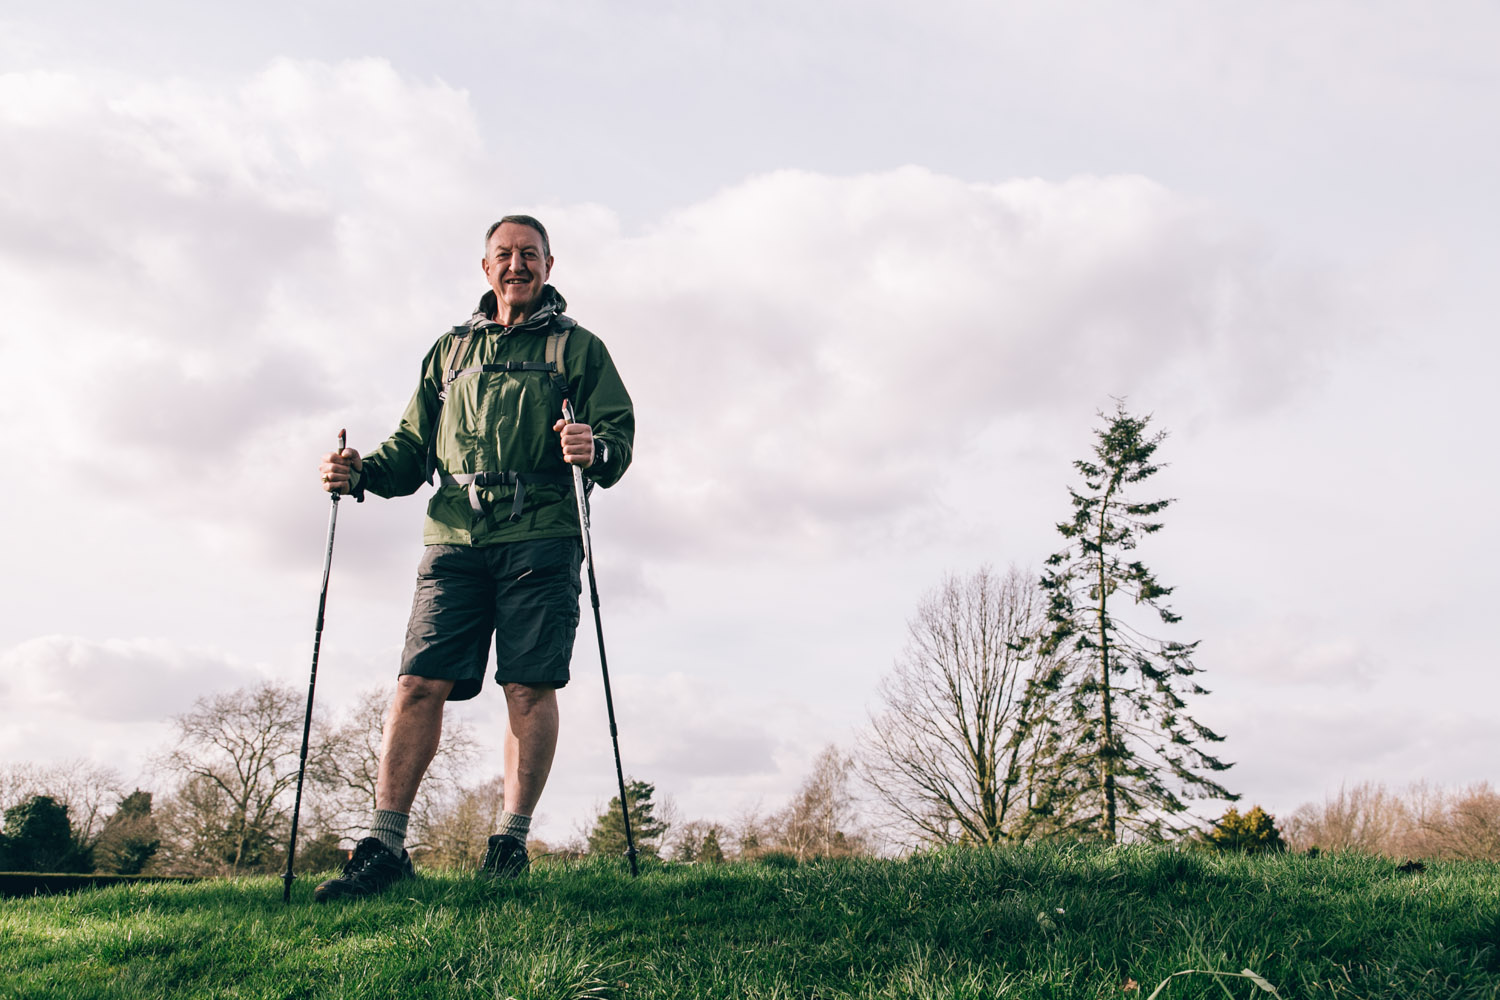 Man calls on people to back heart disease hiking campaign